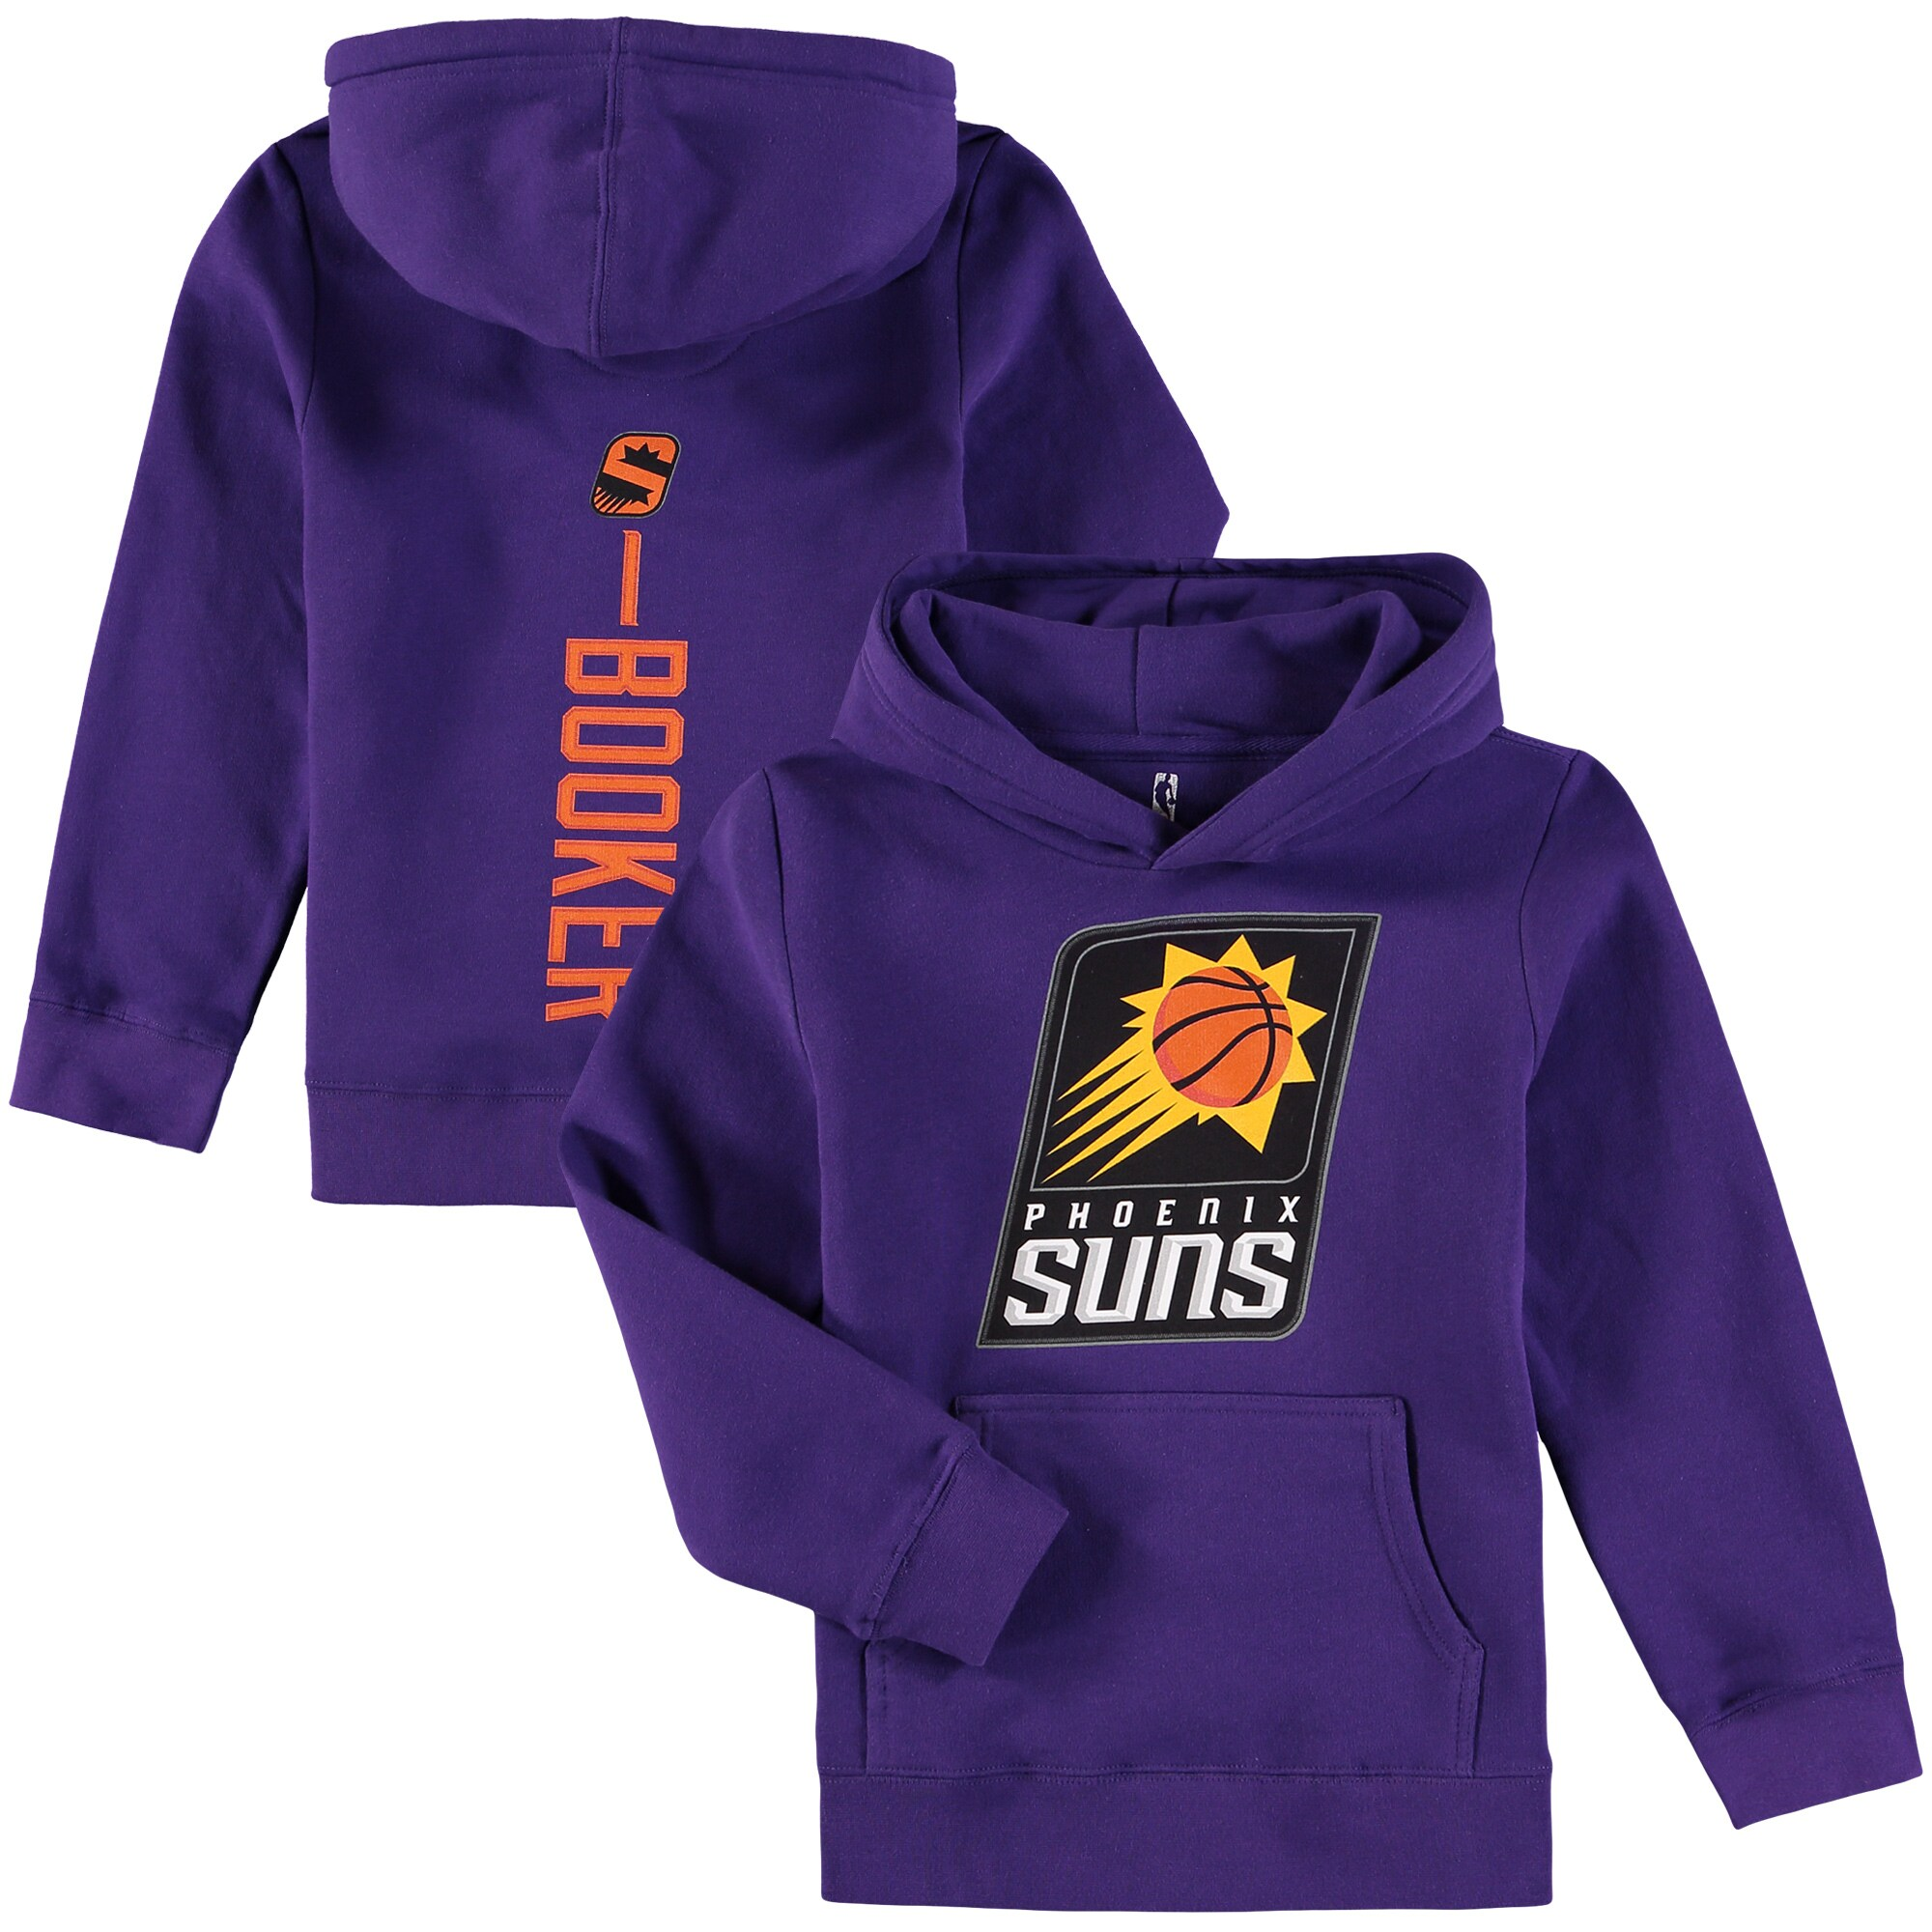 Devin Booker Phoenix Suns Fanatics Branded Youth Backer Name & Number Pullover Hoodie - Purple